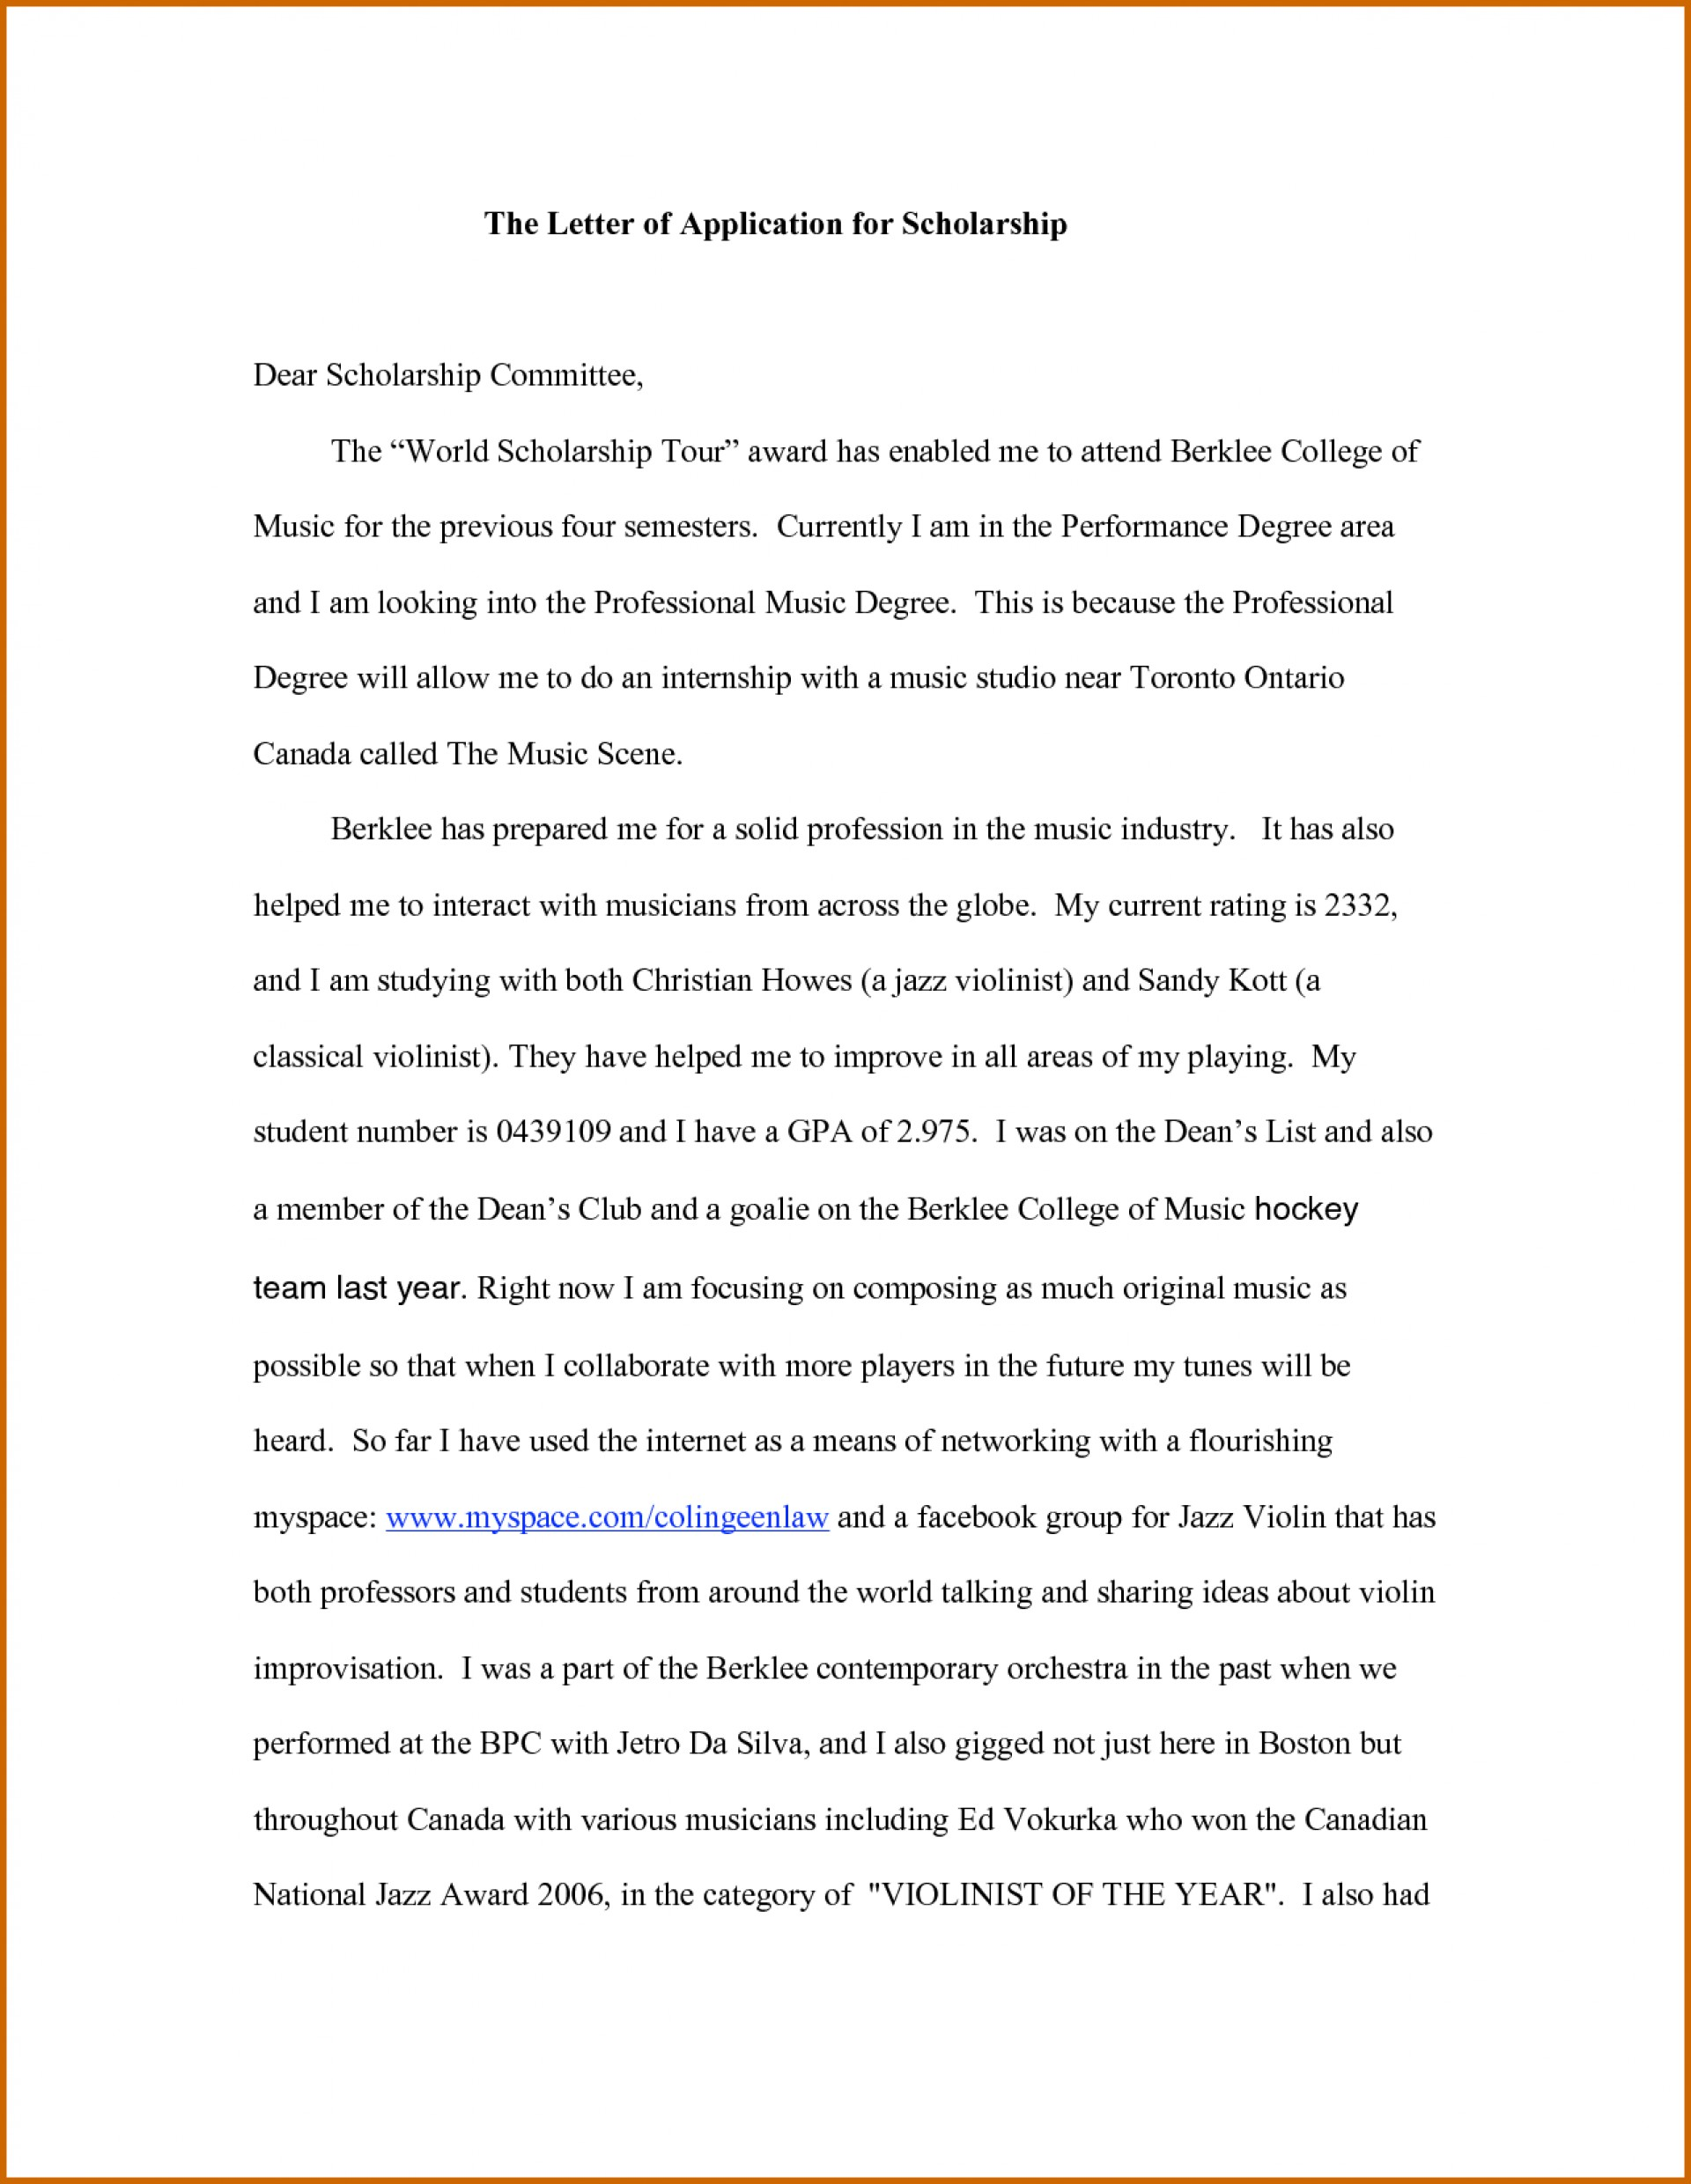 009 Essay Example How To Write Application For Scholarship Unusual Essays Topics 2017 Format Prompts 1920